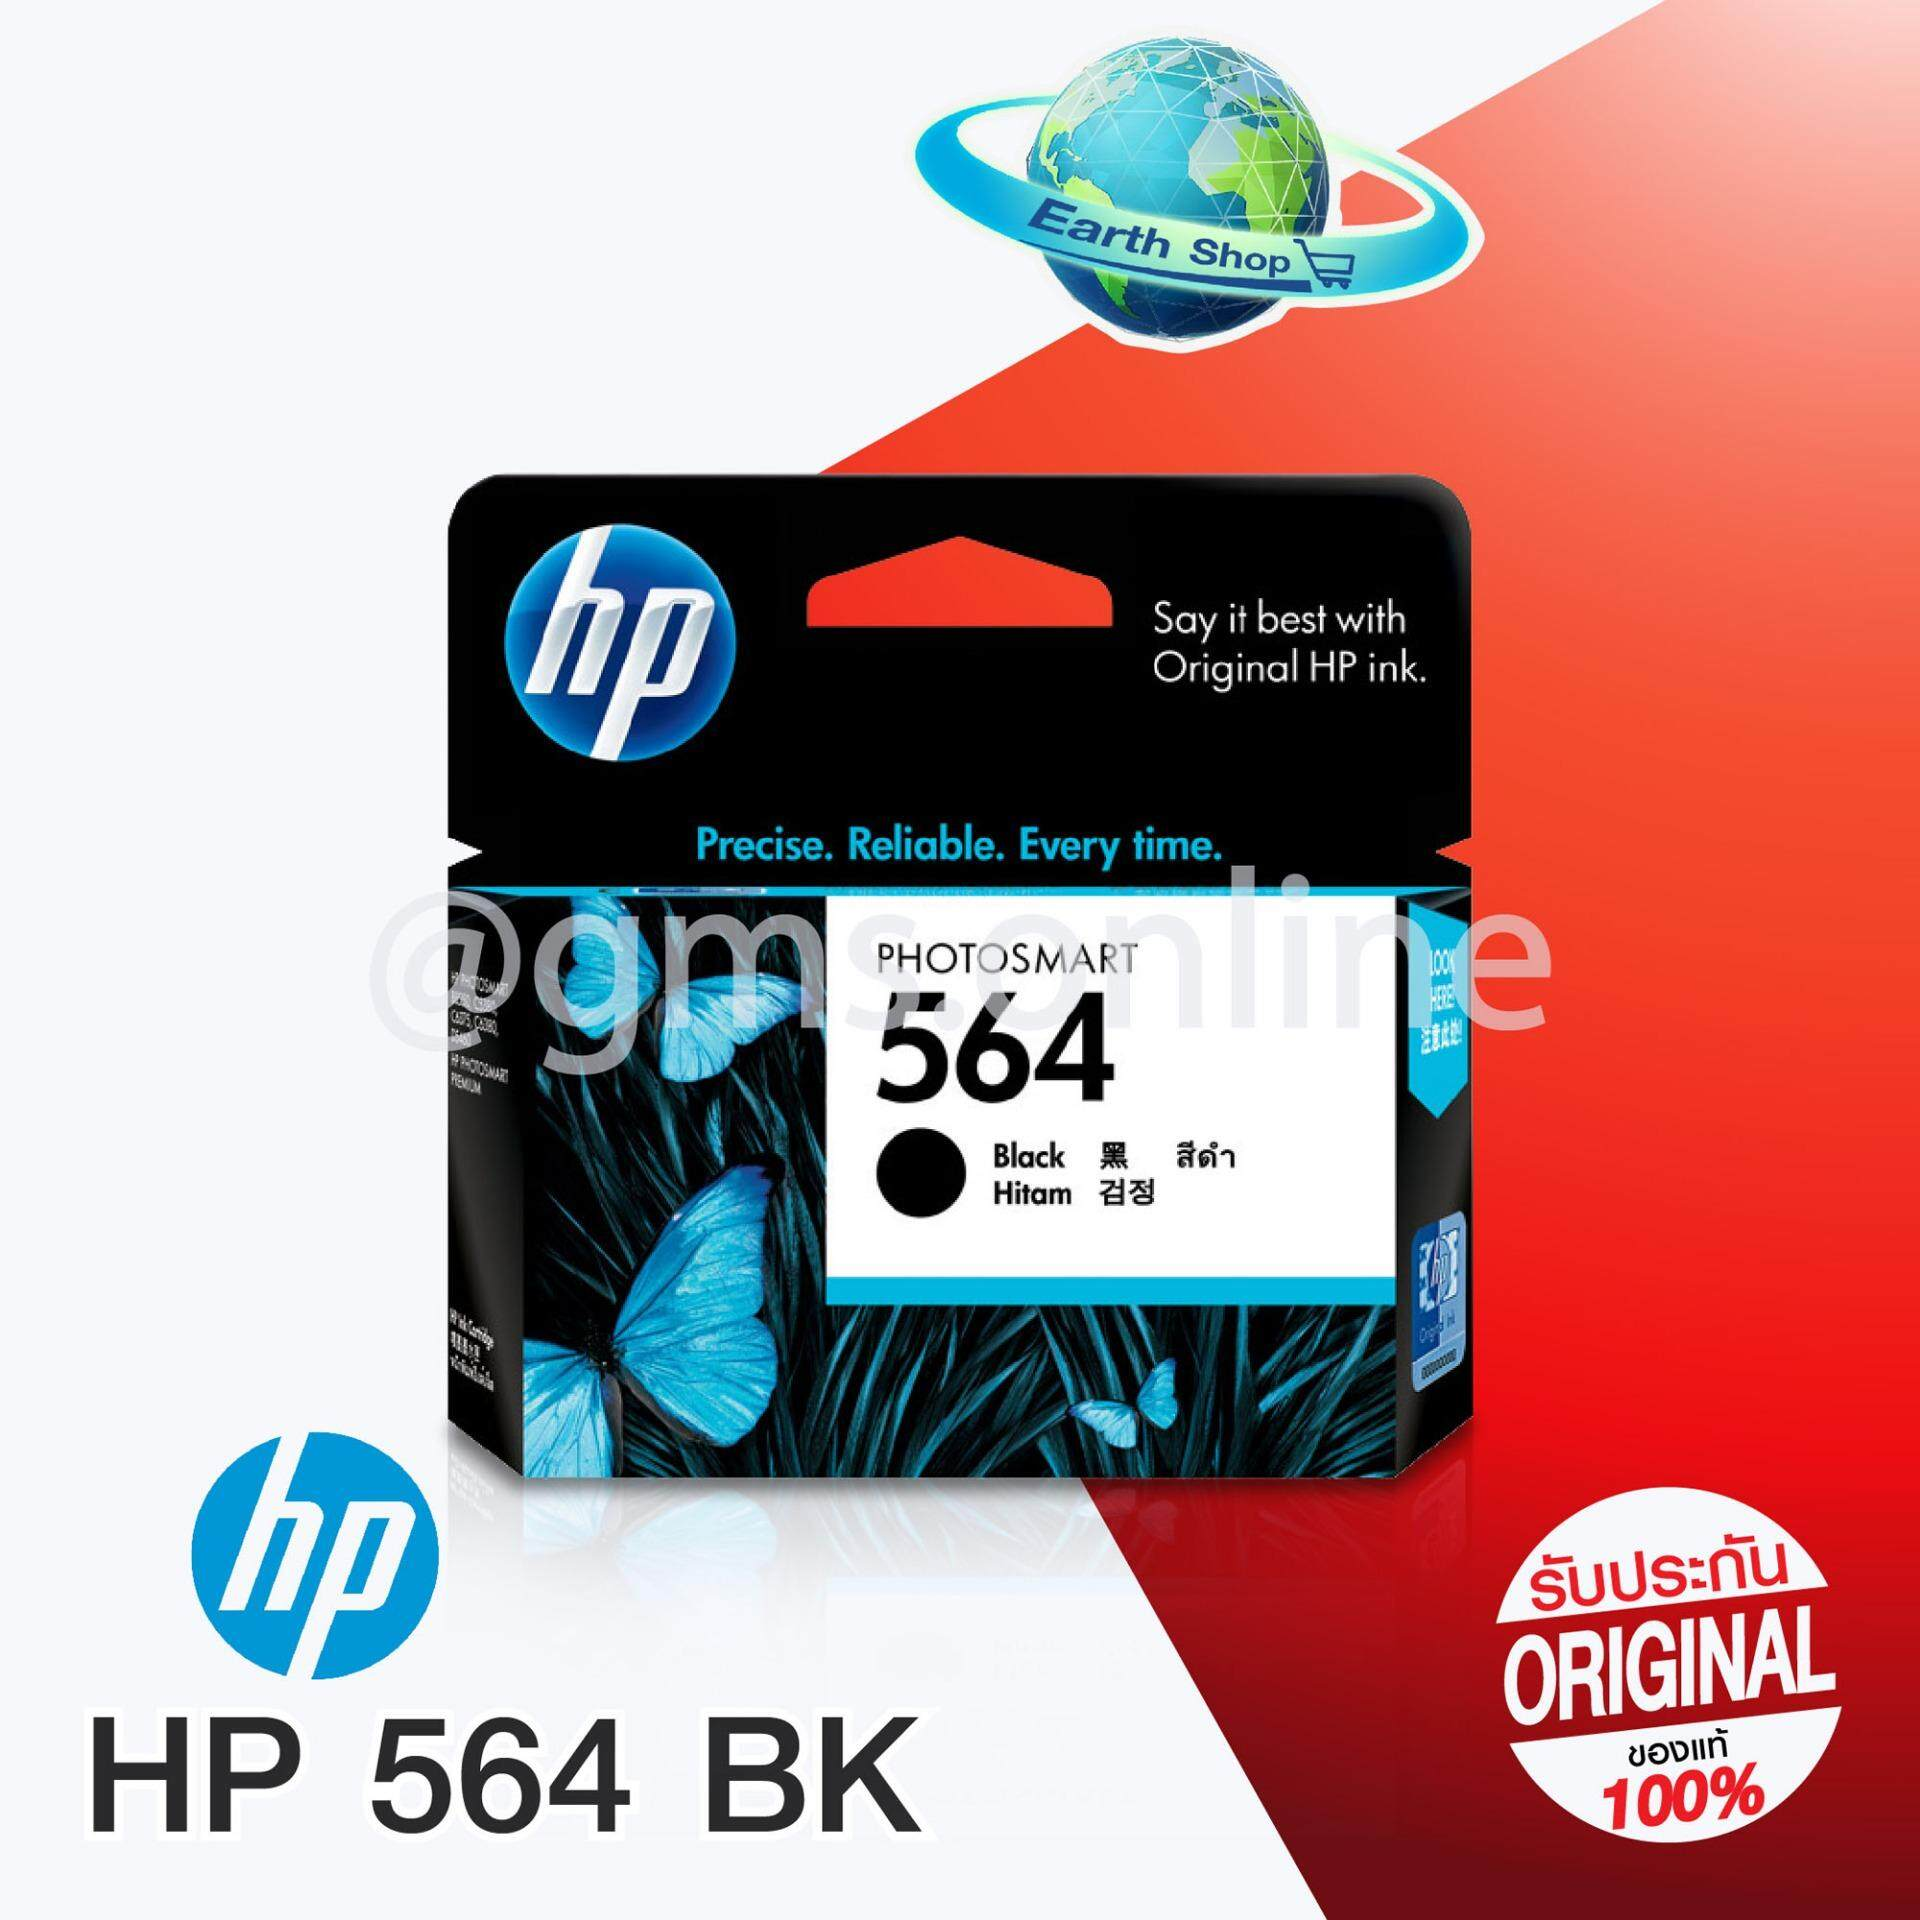 HP 564 CB316WA (BLACK)ของแท้- 3070A/3520/5510/5520/6510/6520/7510/7520/B109/B209A/B210A/4610/4620 - Photosmart premium fax all-in-one C309a/C3099/B110a/C4102/